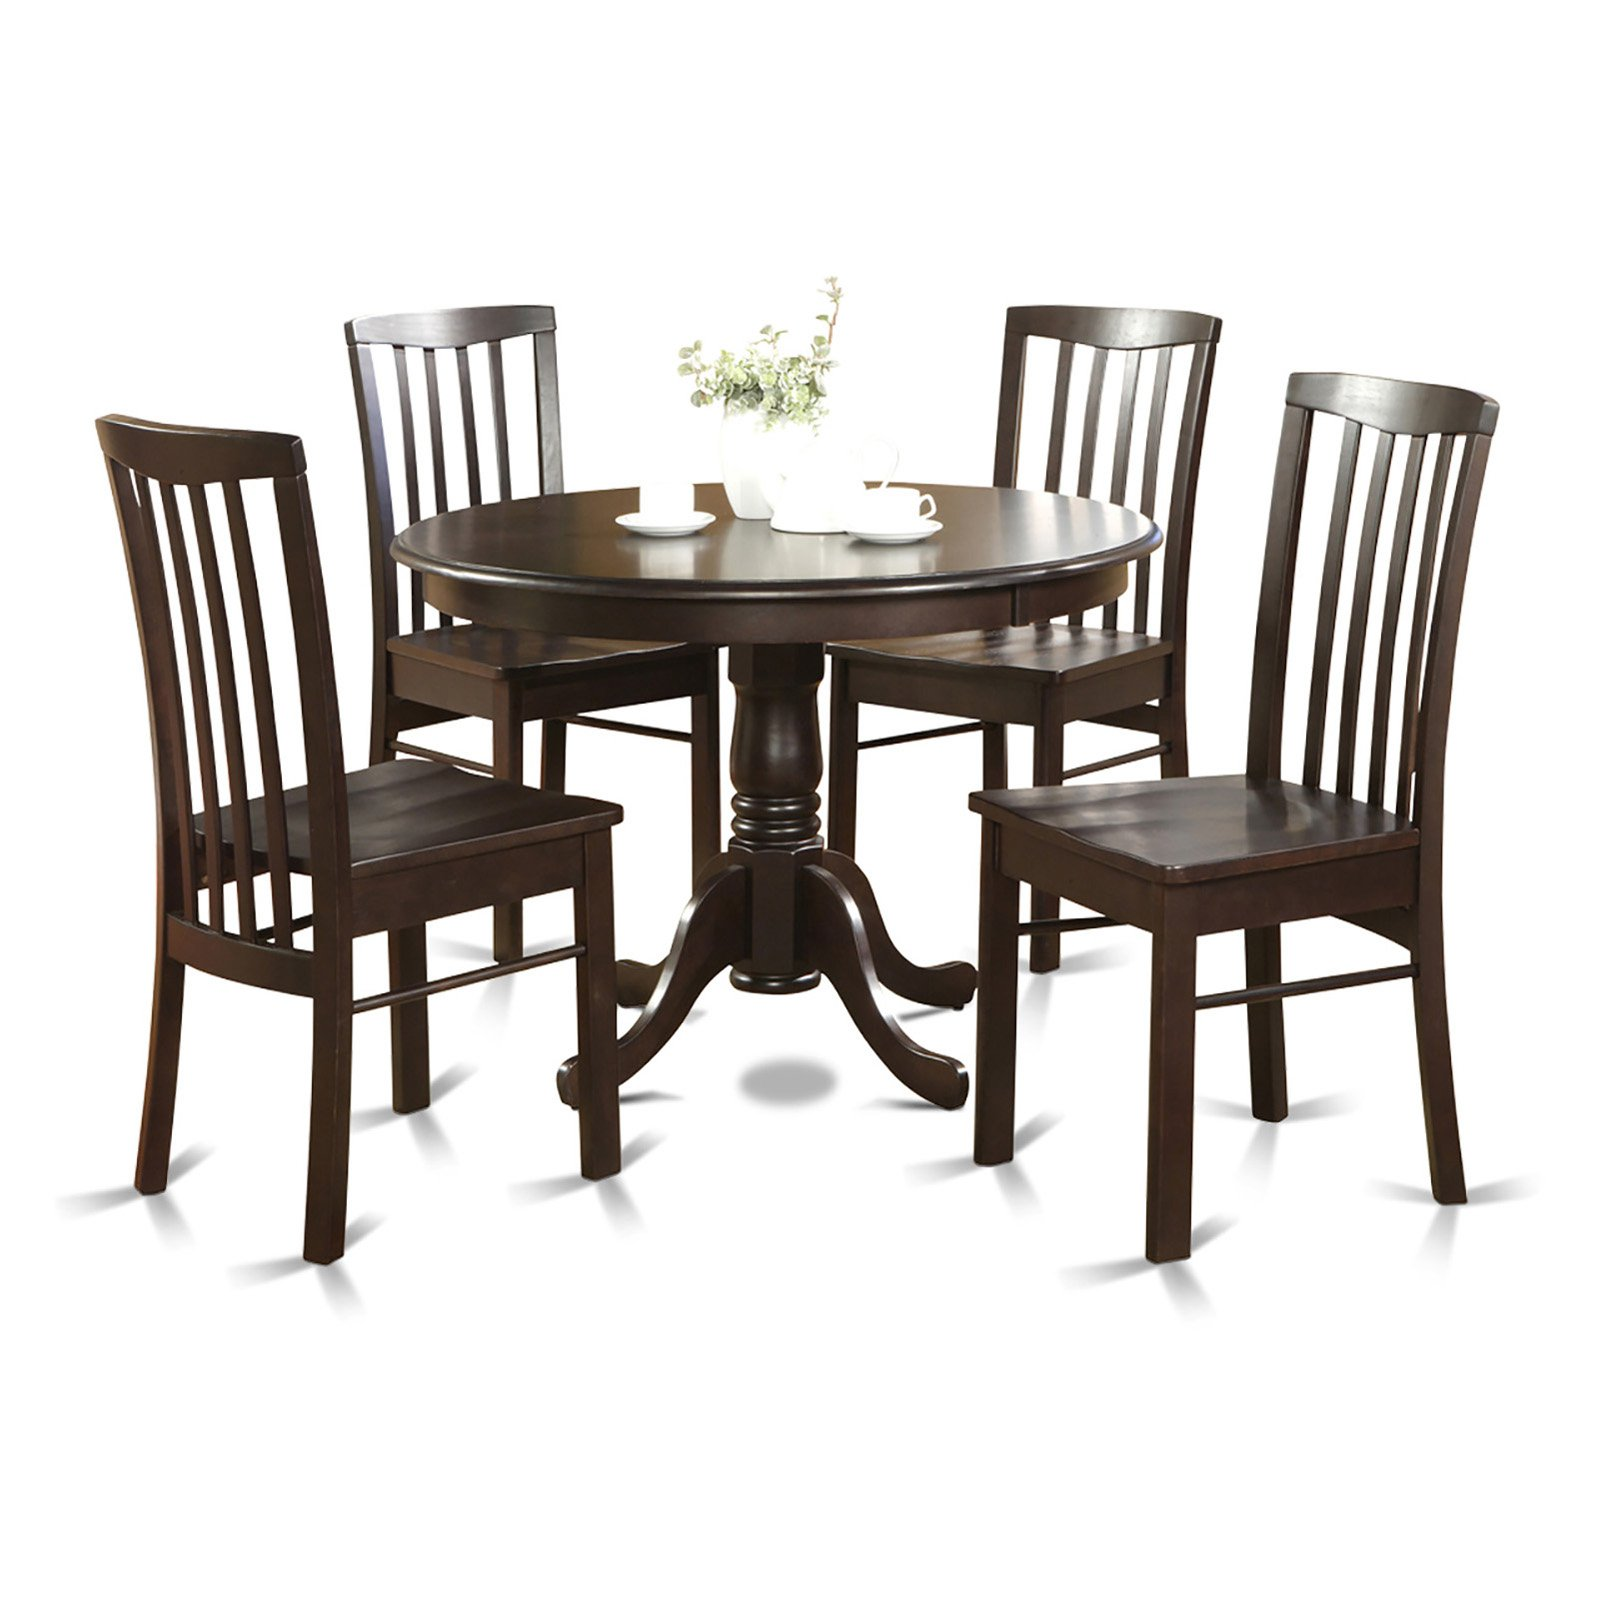 East West Furniture Hartland 5 Piece Round Pedestal Dining Table Set